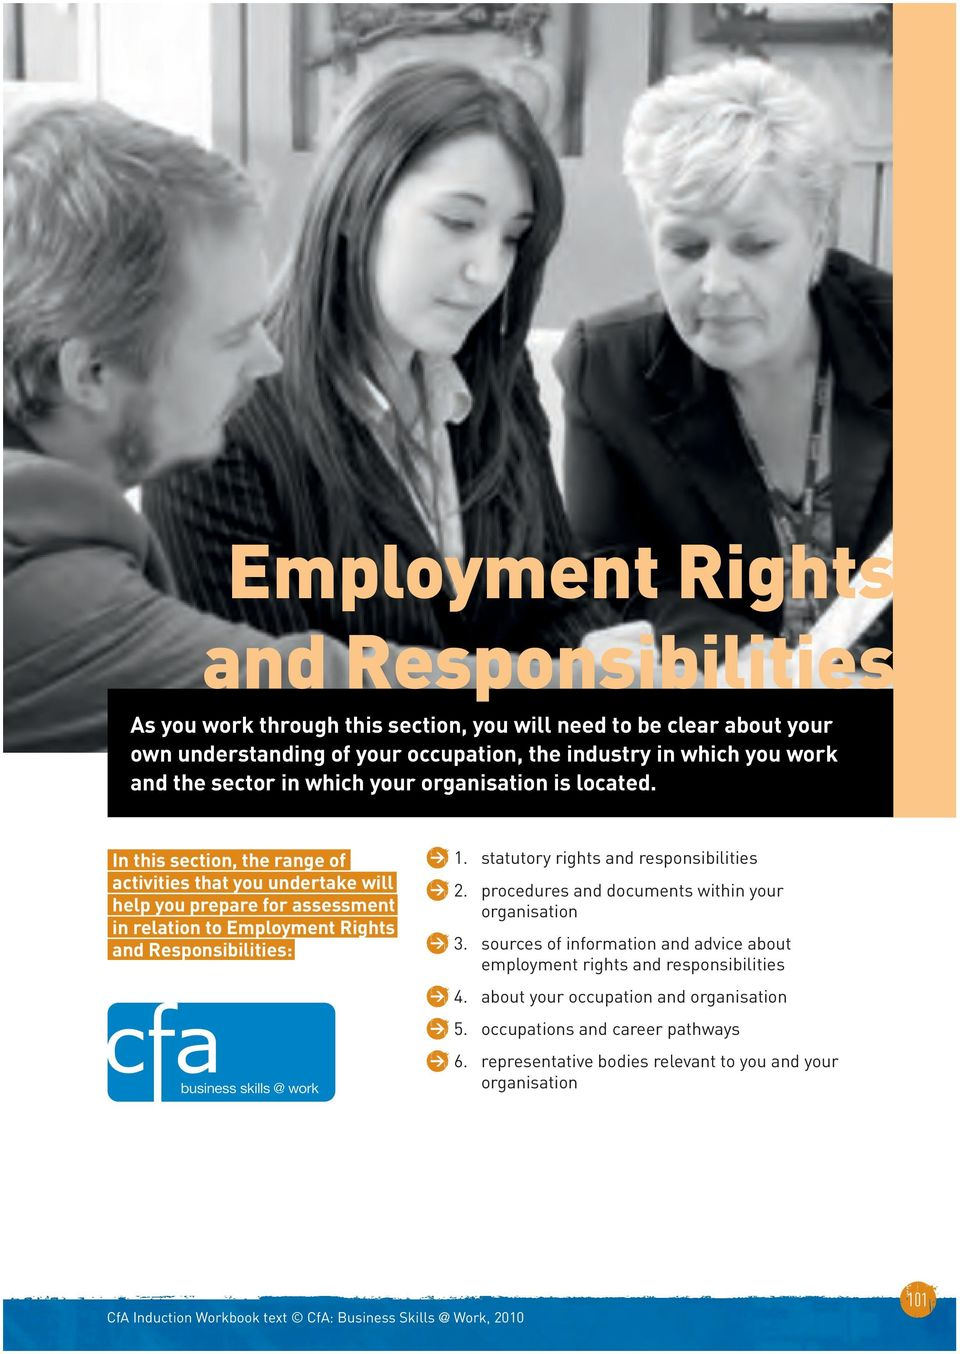 In this section, the range of activities that you undertake will help you prepare for assessment in relation to Employment Rights and Responsibilities: 1.